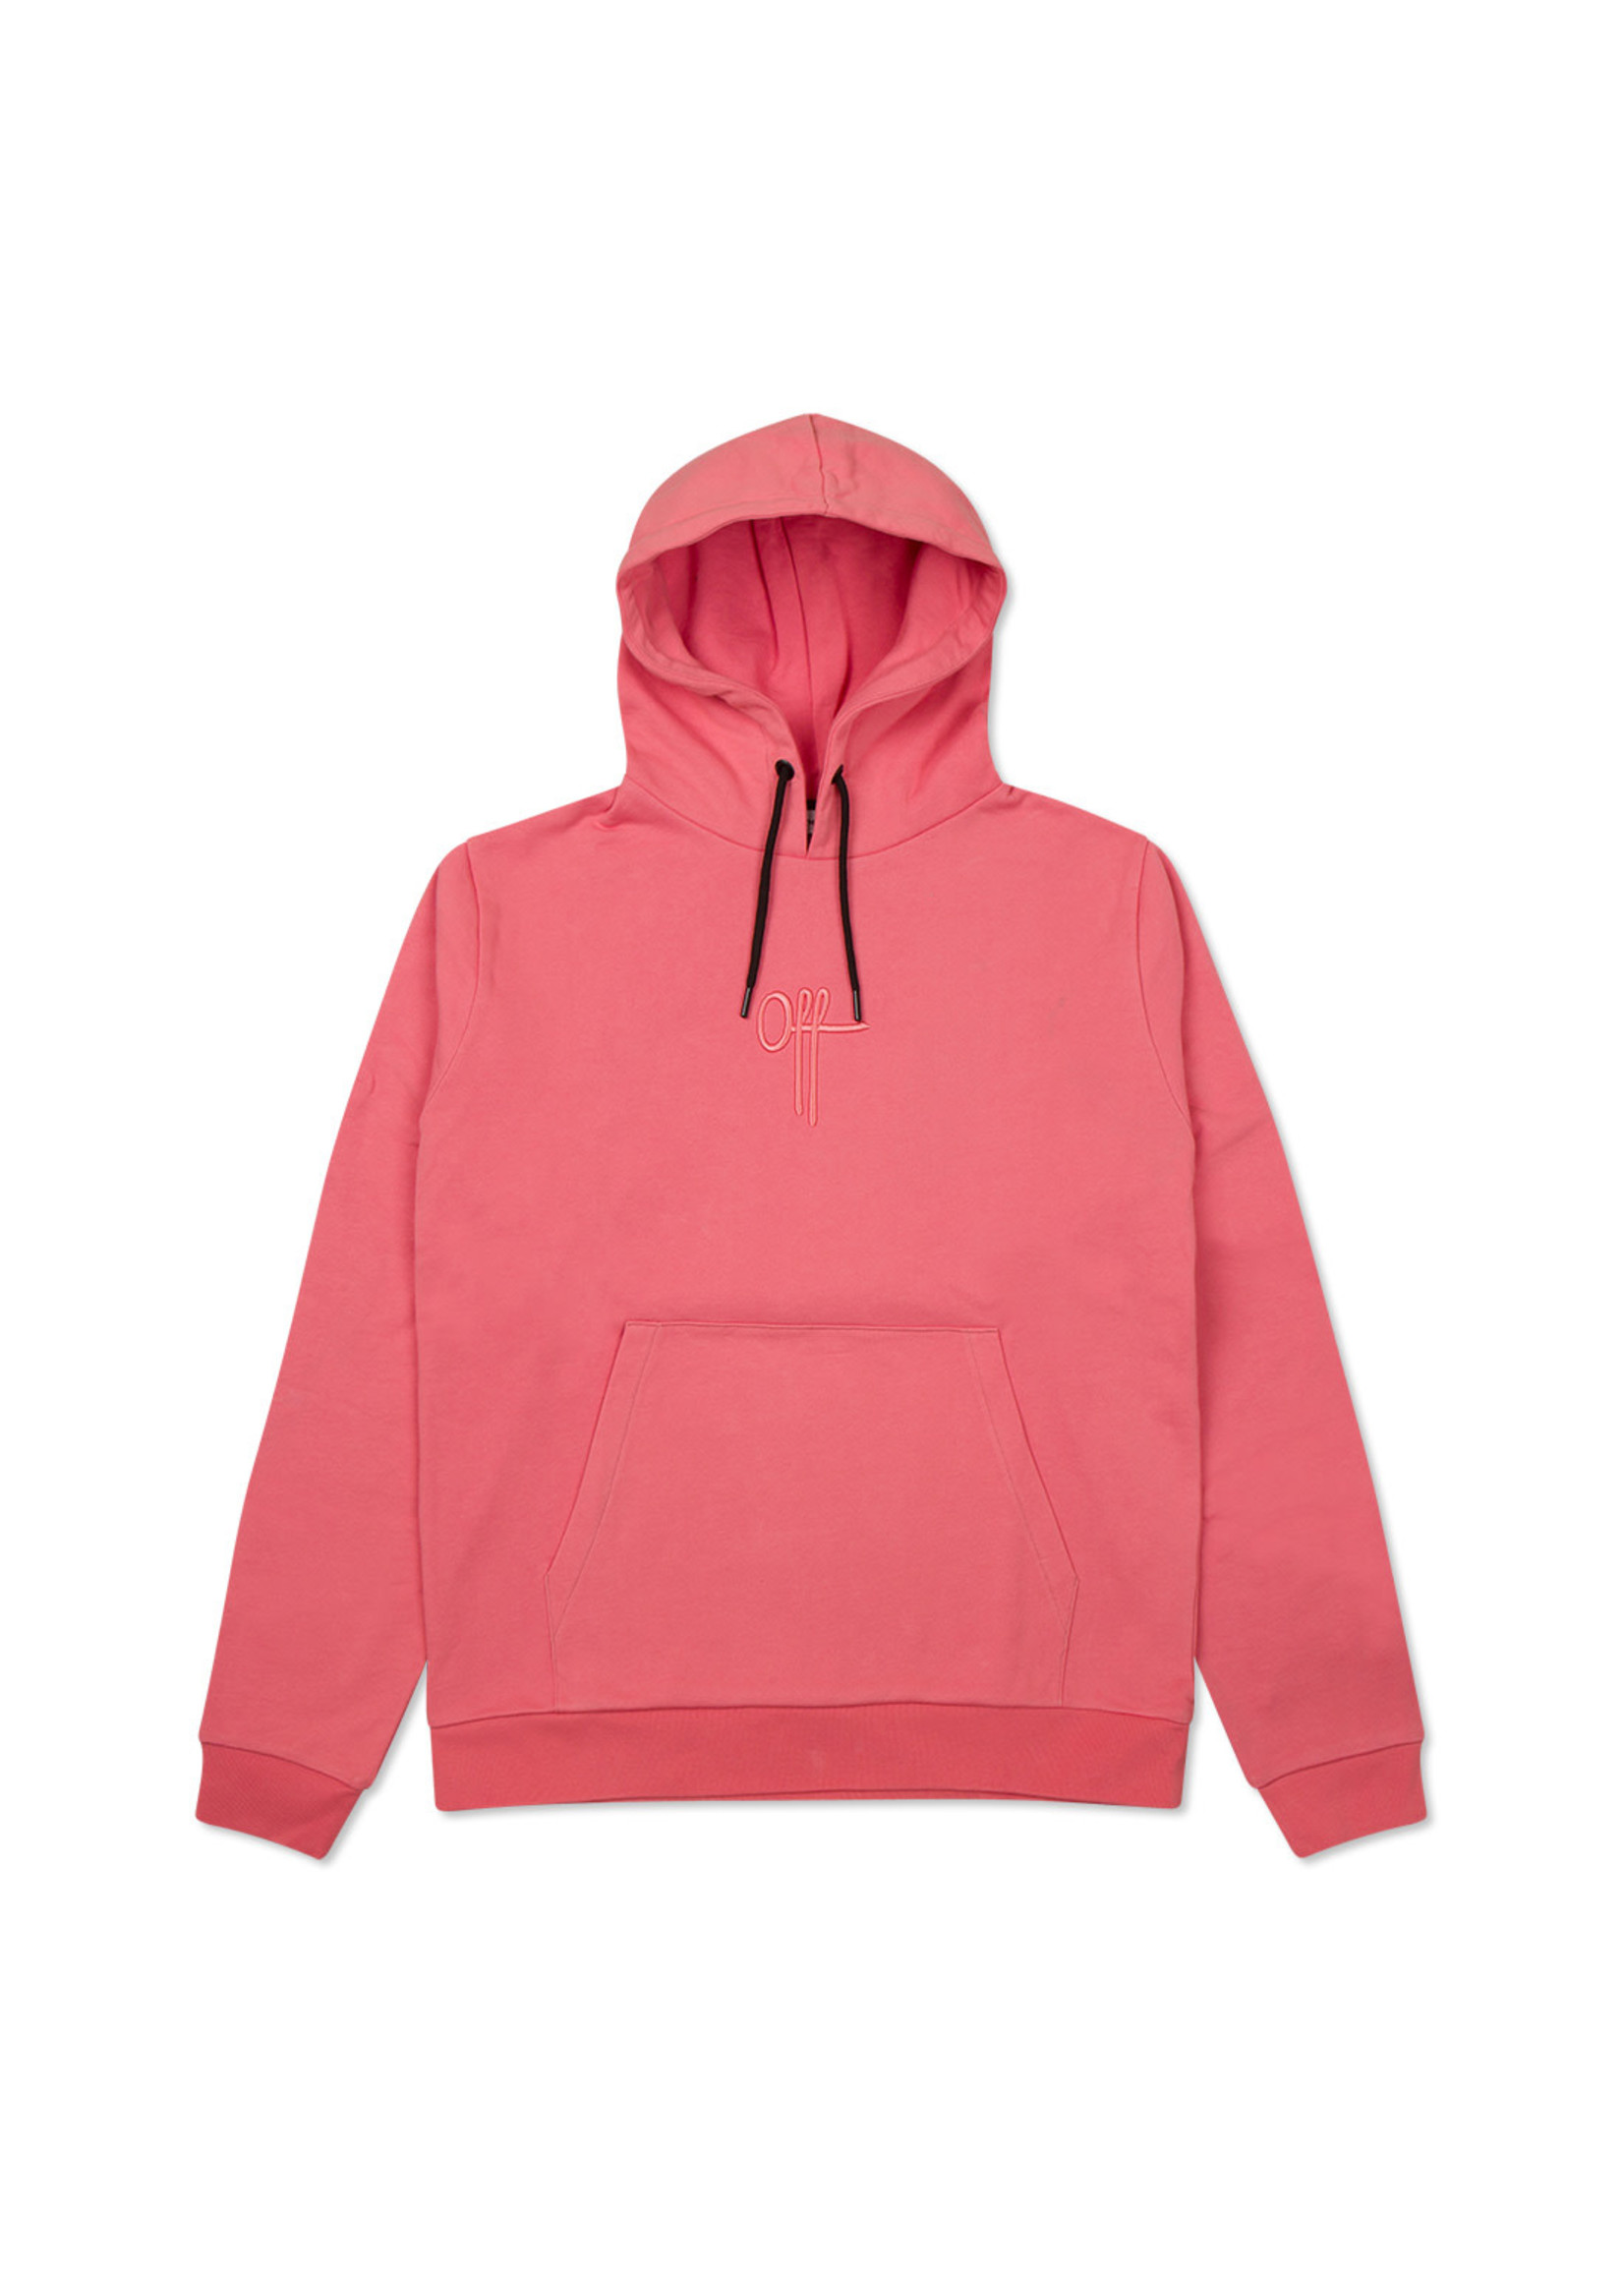 OFF THE PITCH OFF THE PITCH The Earth Hood - Pink